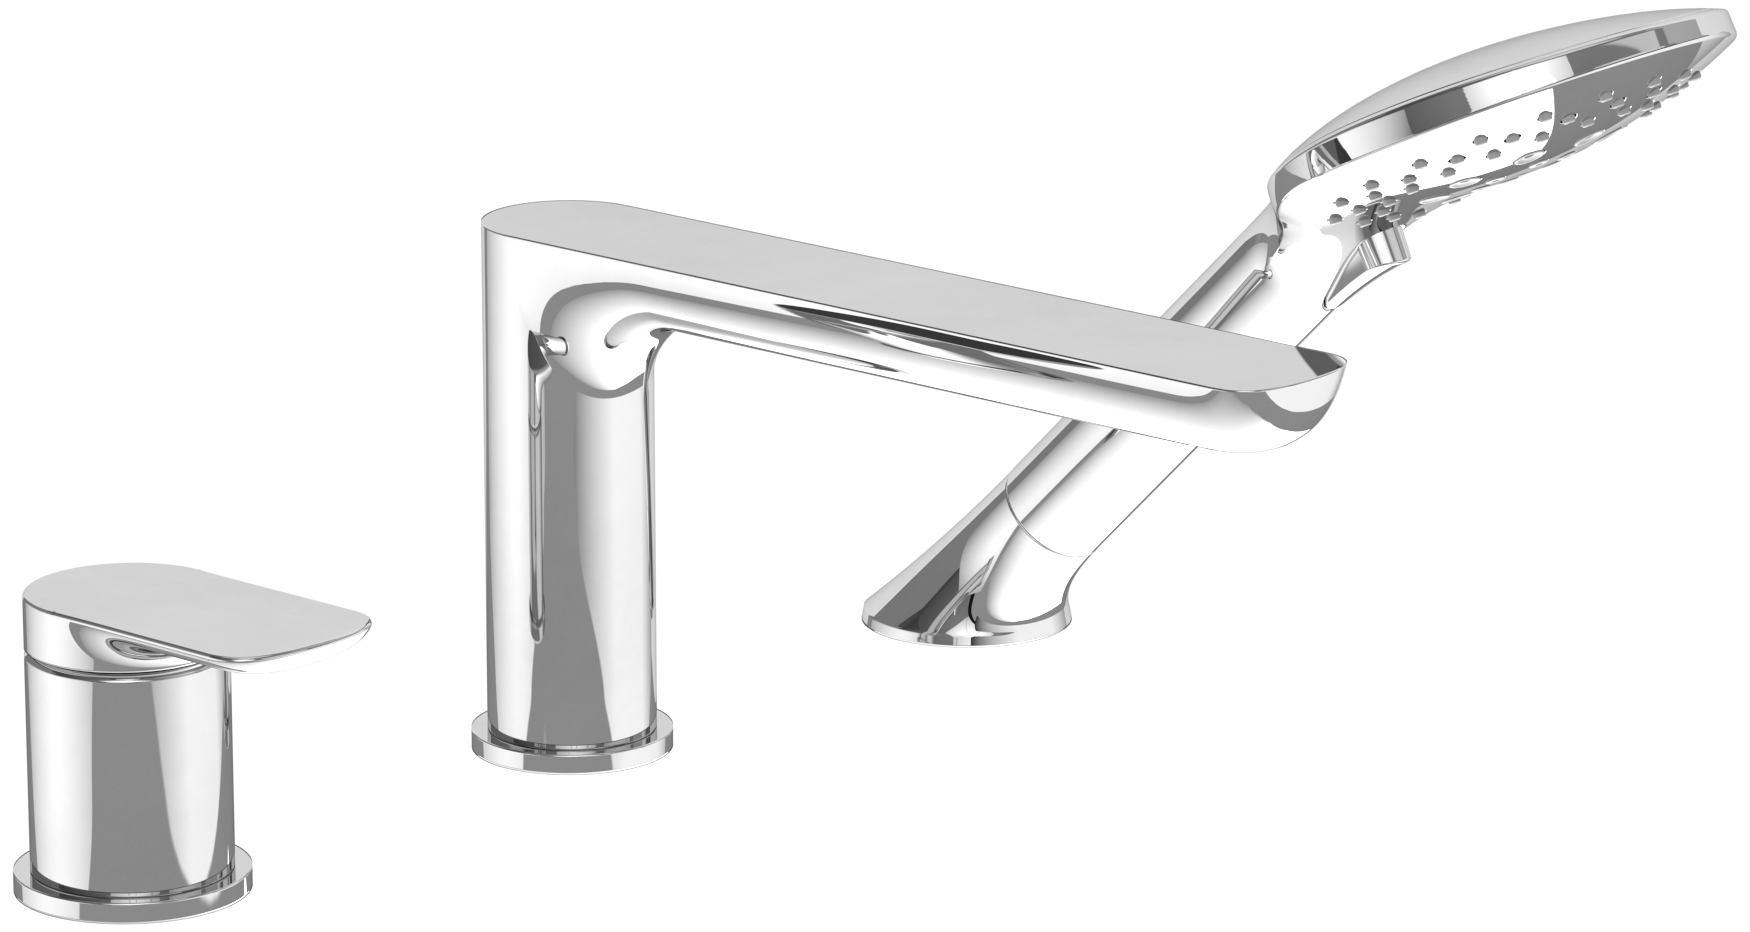 O Novo Three Hole Single Lever Bath Mixer For Deck